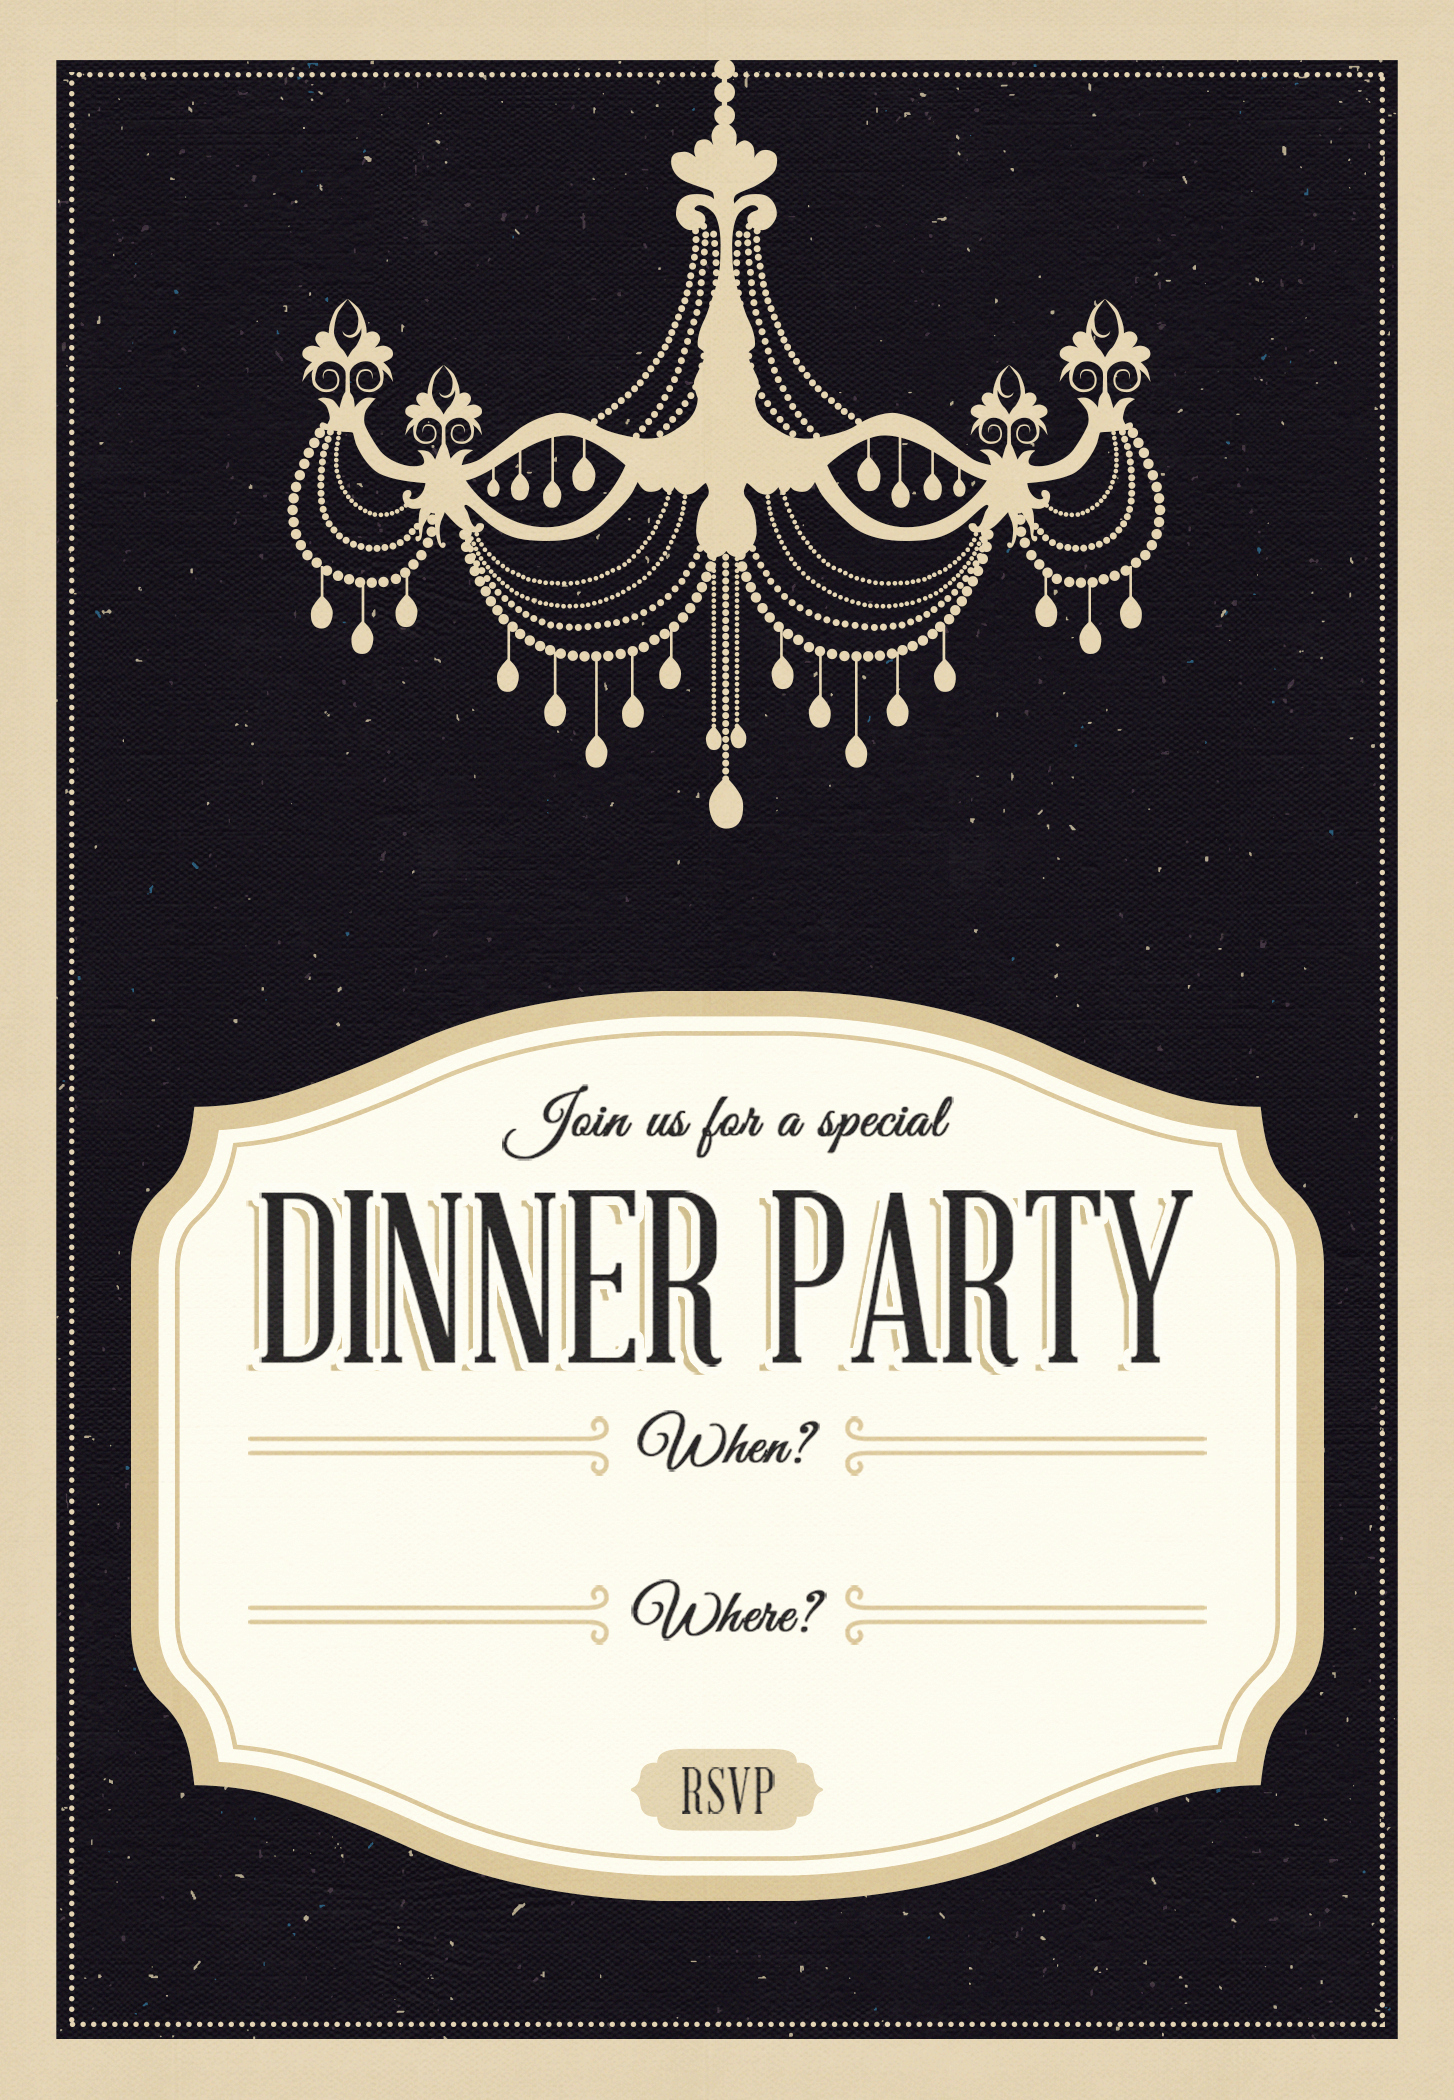 Dinner Invitation Template Free Best Of Classy Chandelier Free Printable Dinner Party Invitation